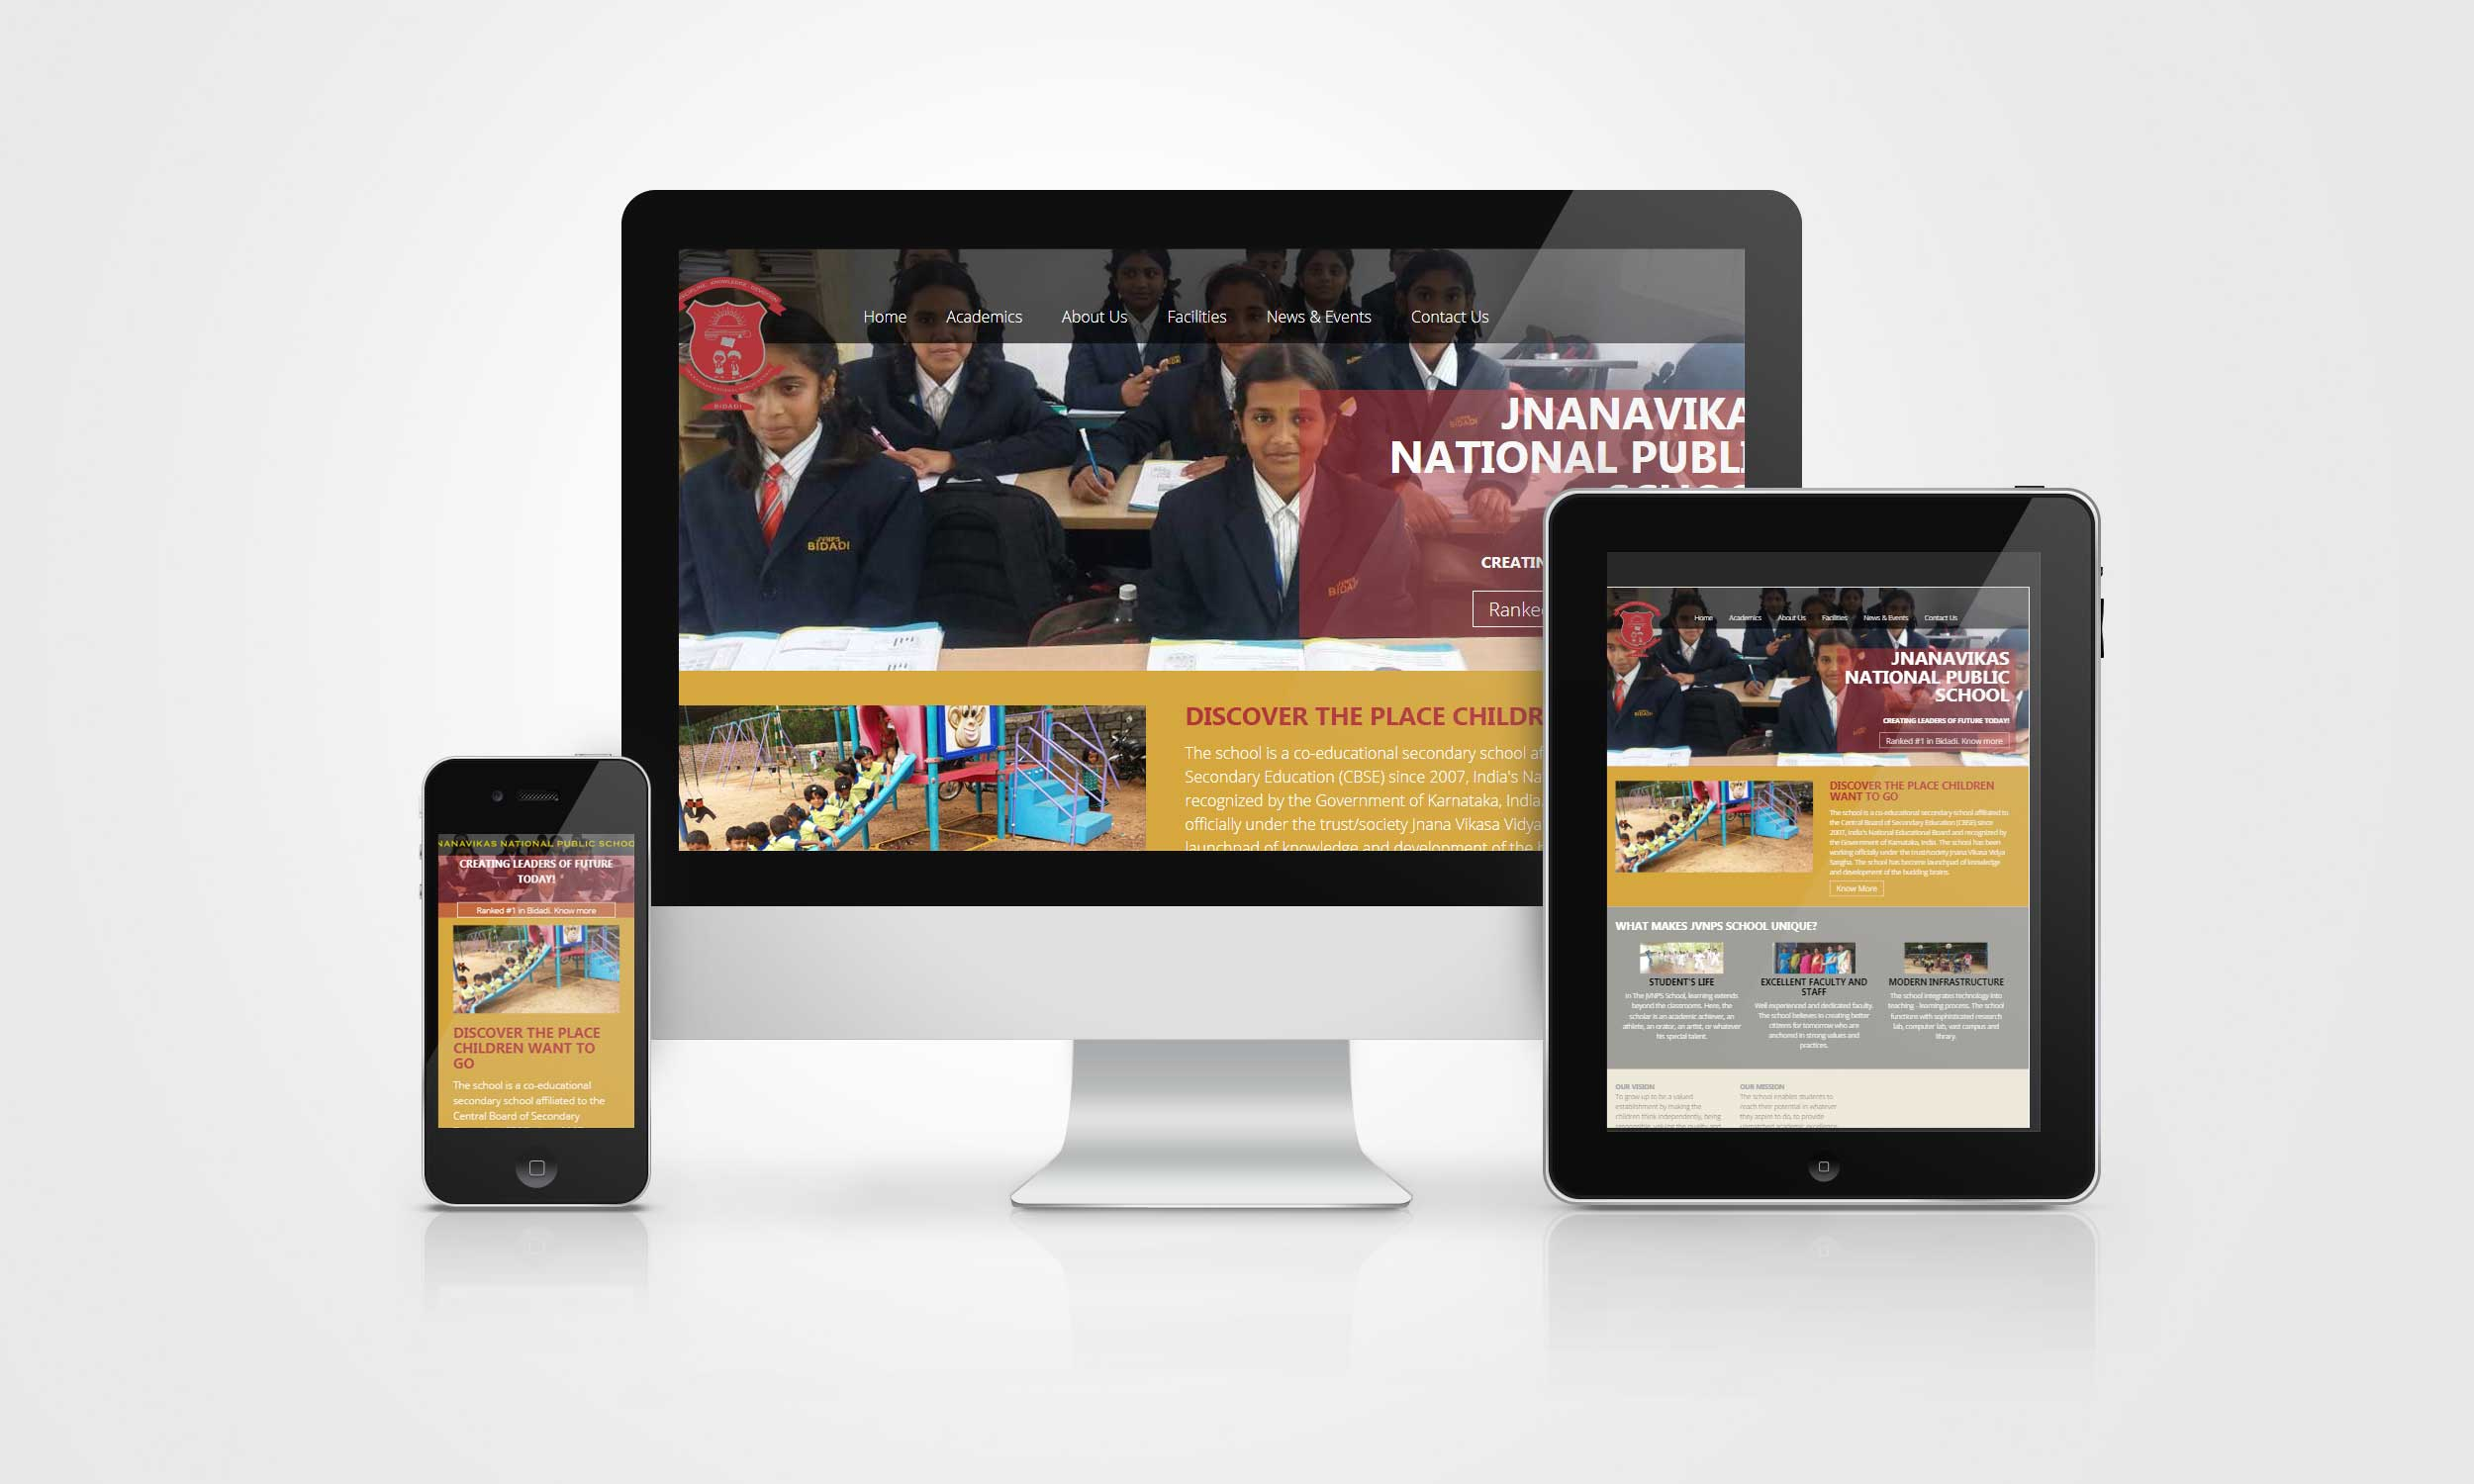 Pelwhiz Portfolio - JnanaVikas National Public School - Website